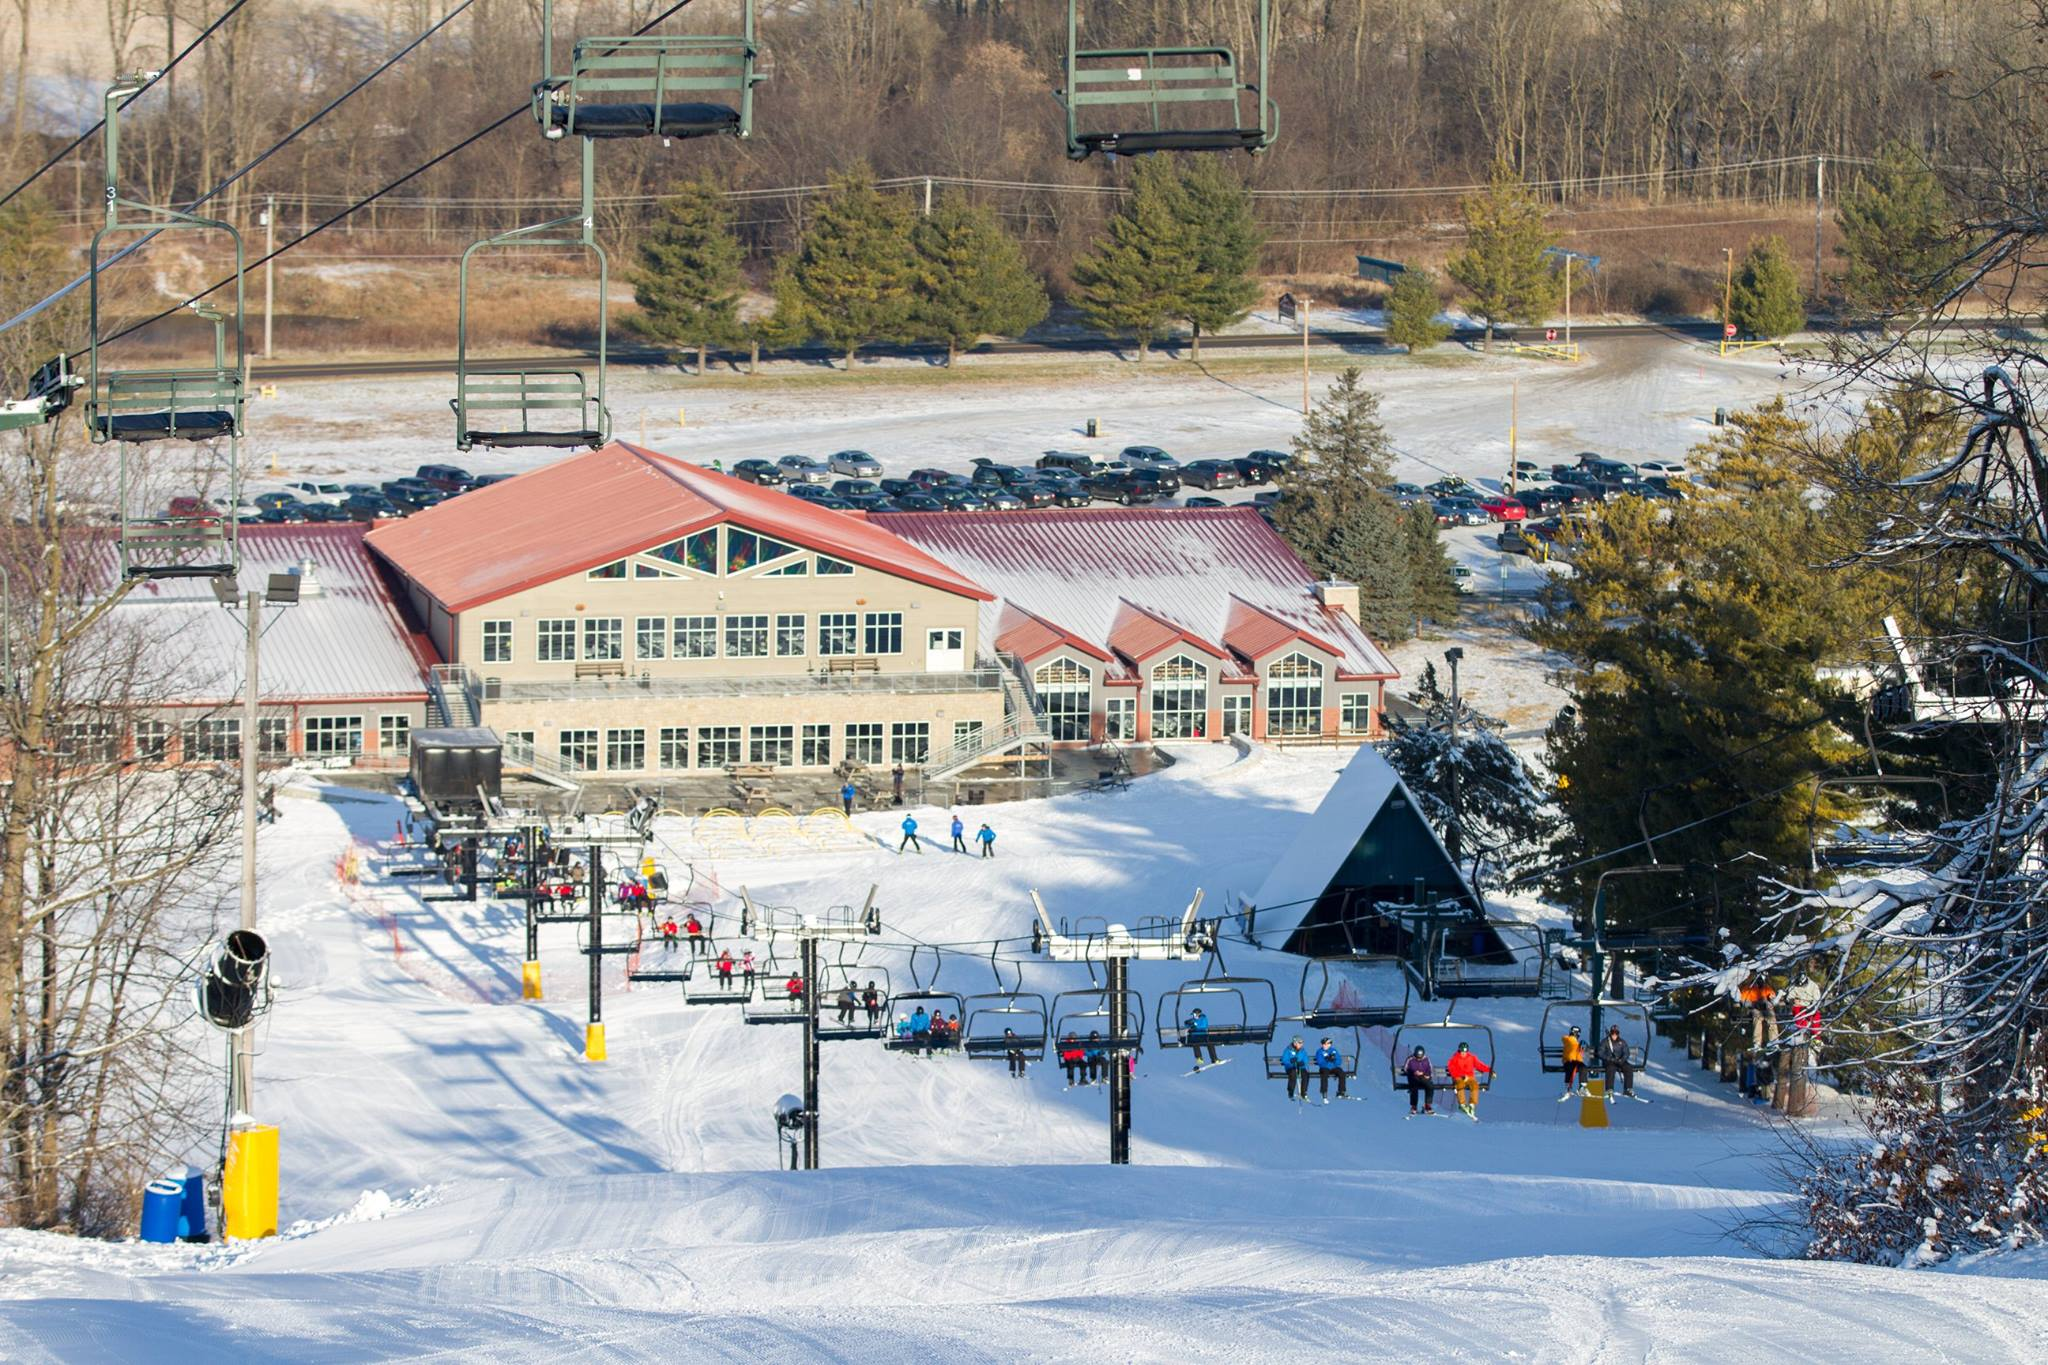 winter break just got cooler: mad river mountain is open for the season